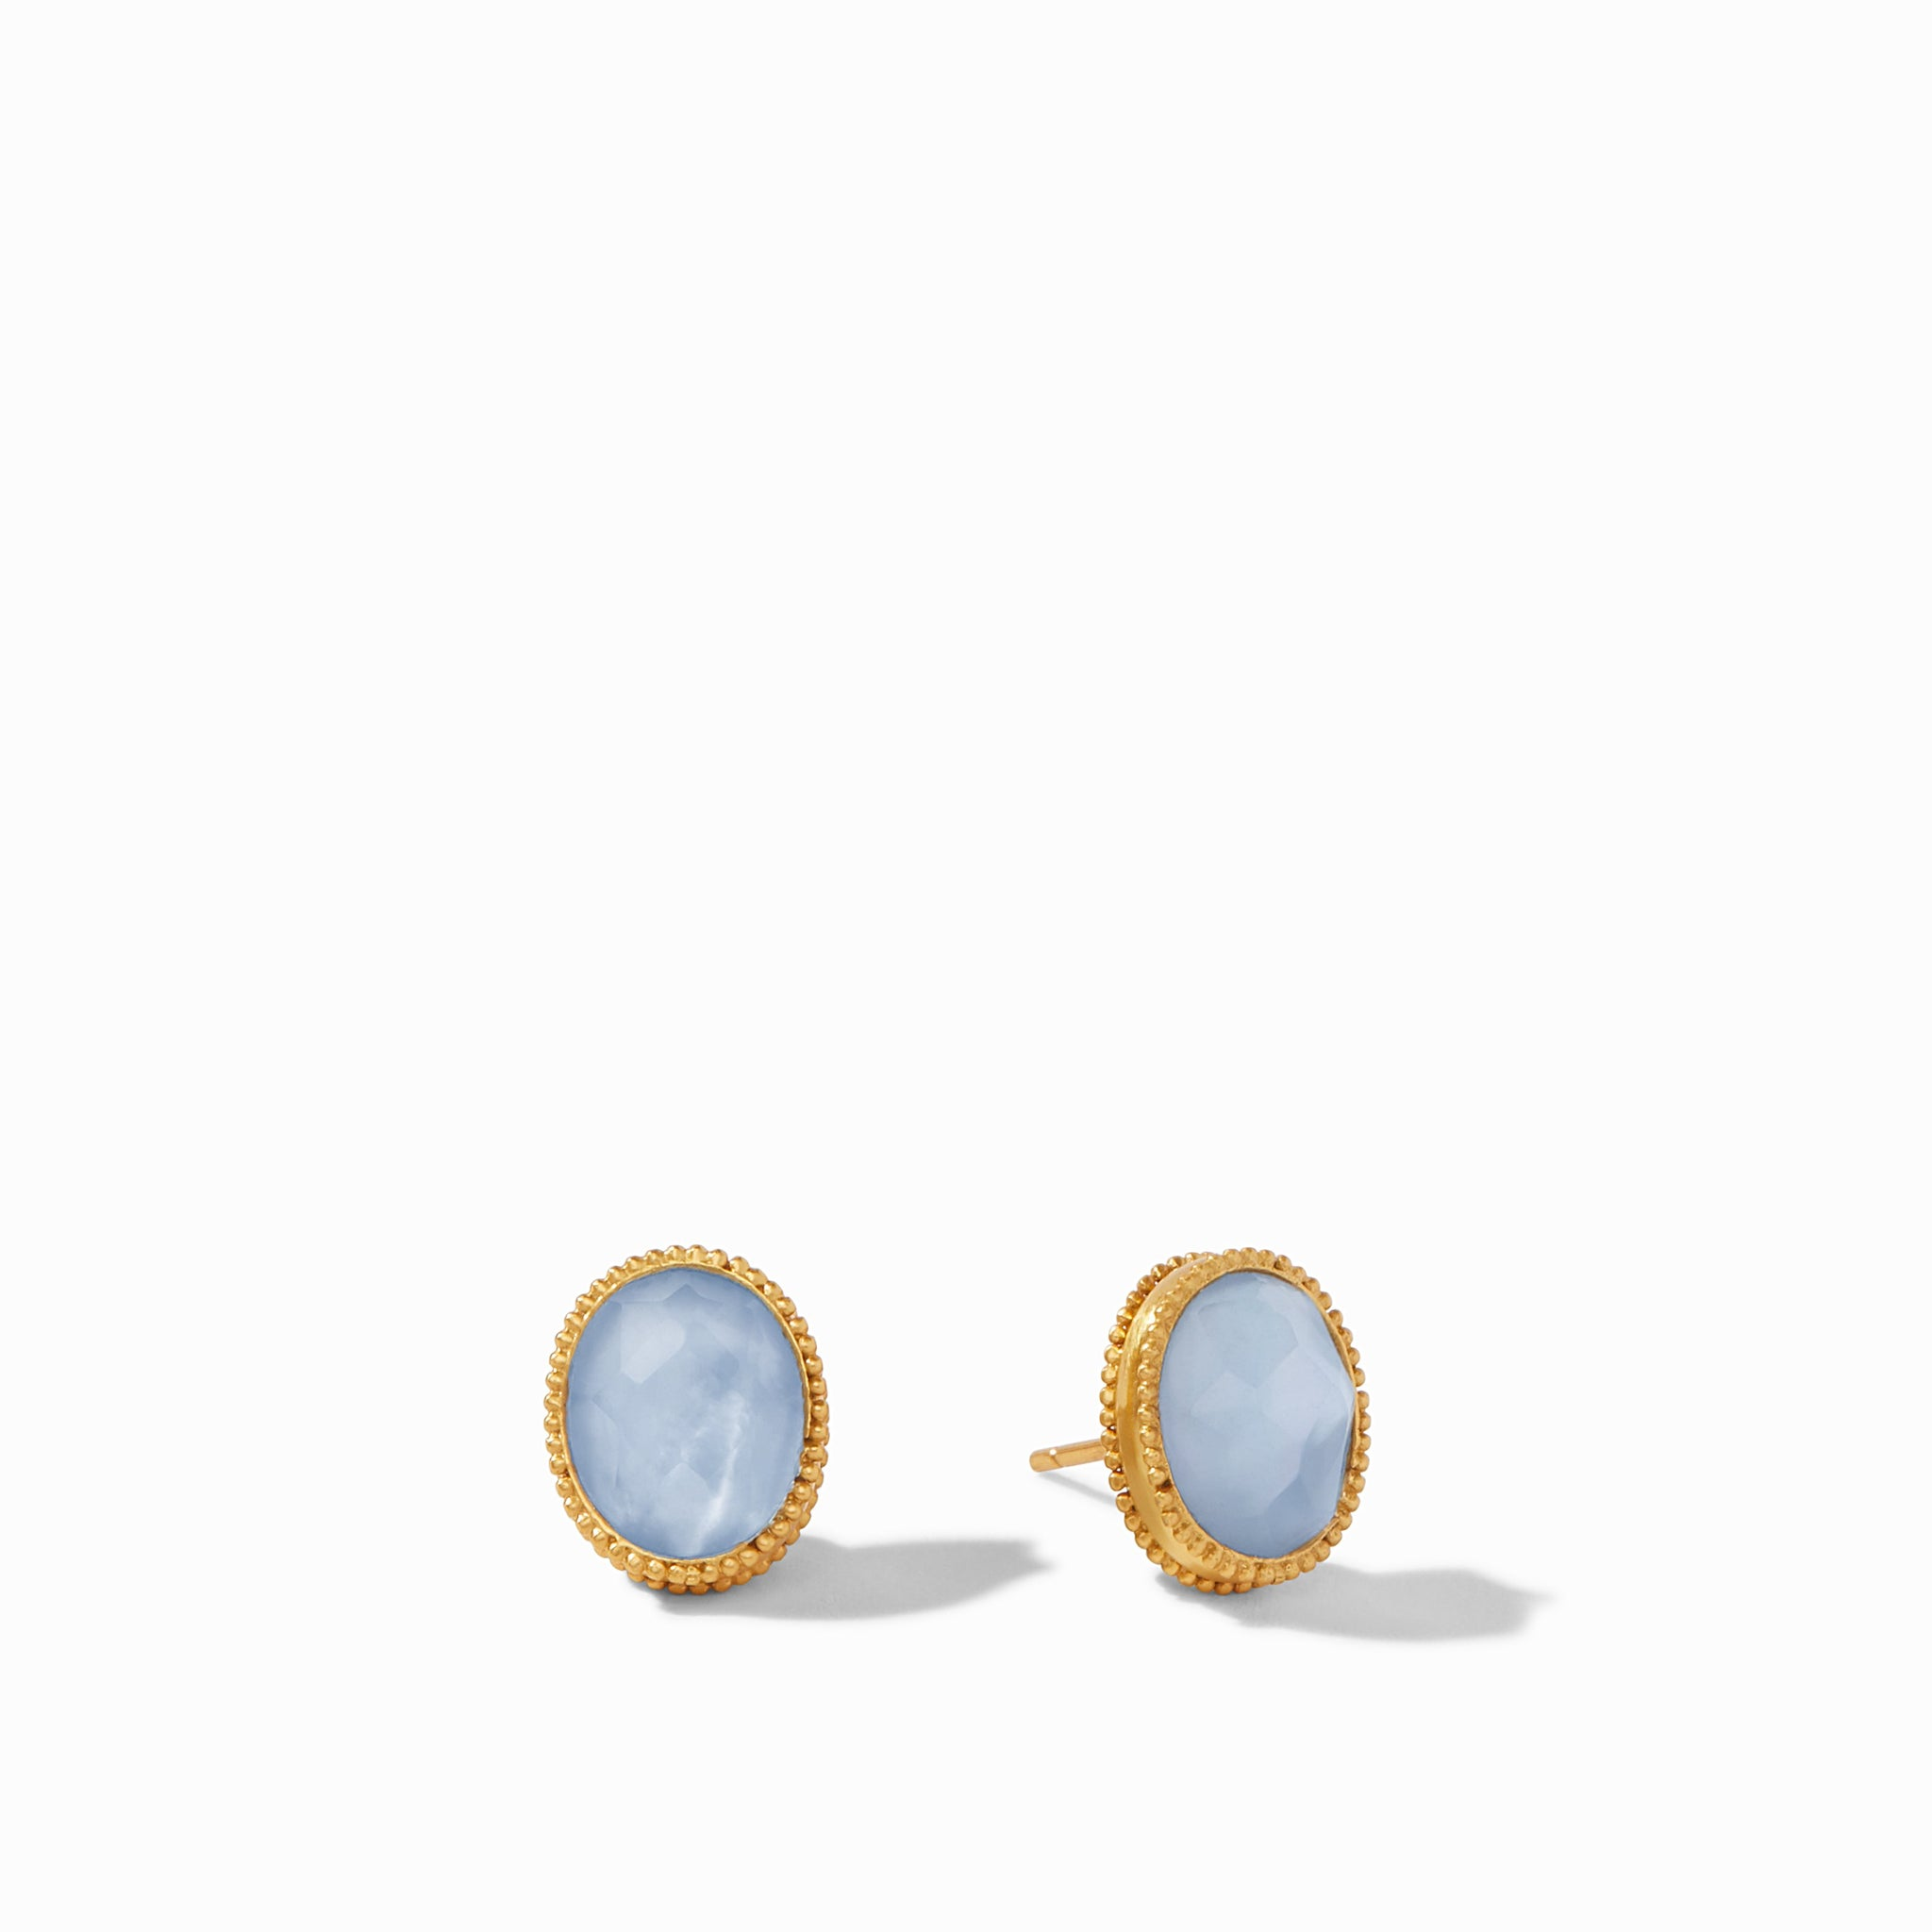 Iridescent Chalcedony Blue, gift guide 2020, the finer things